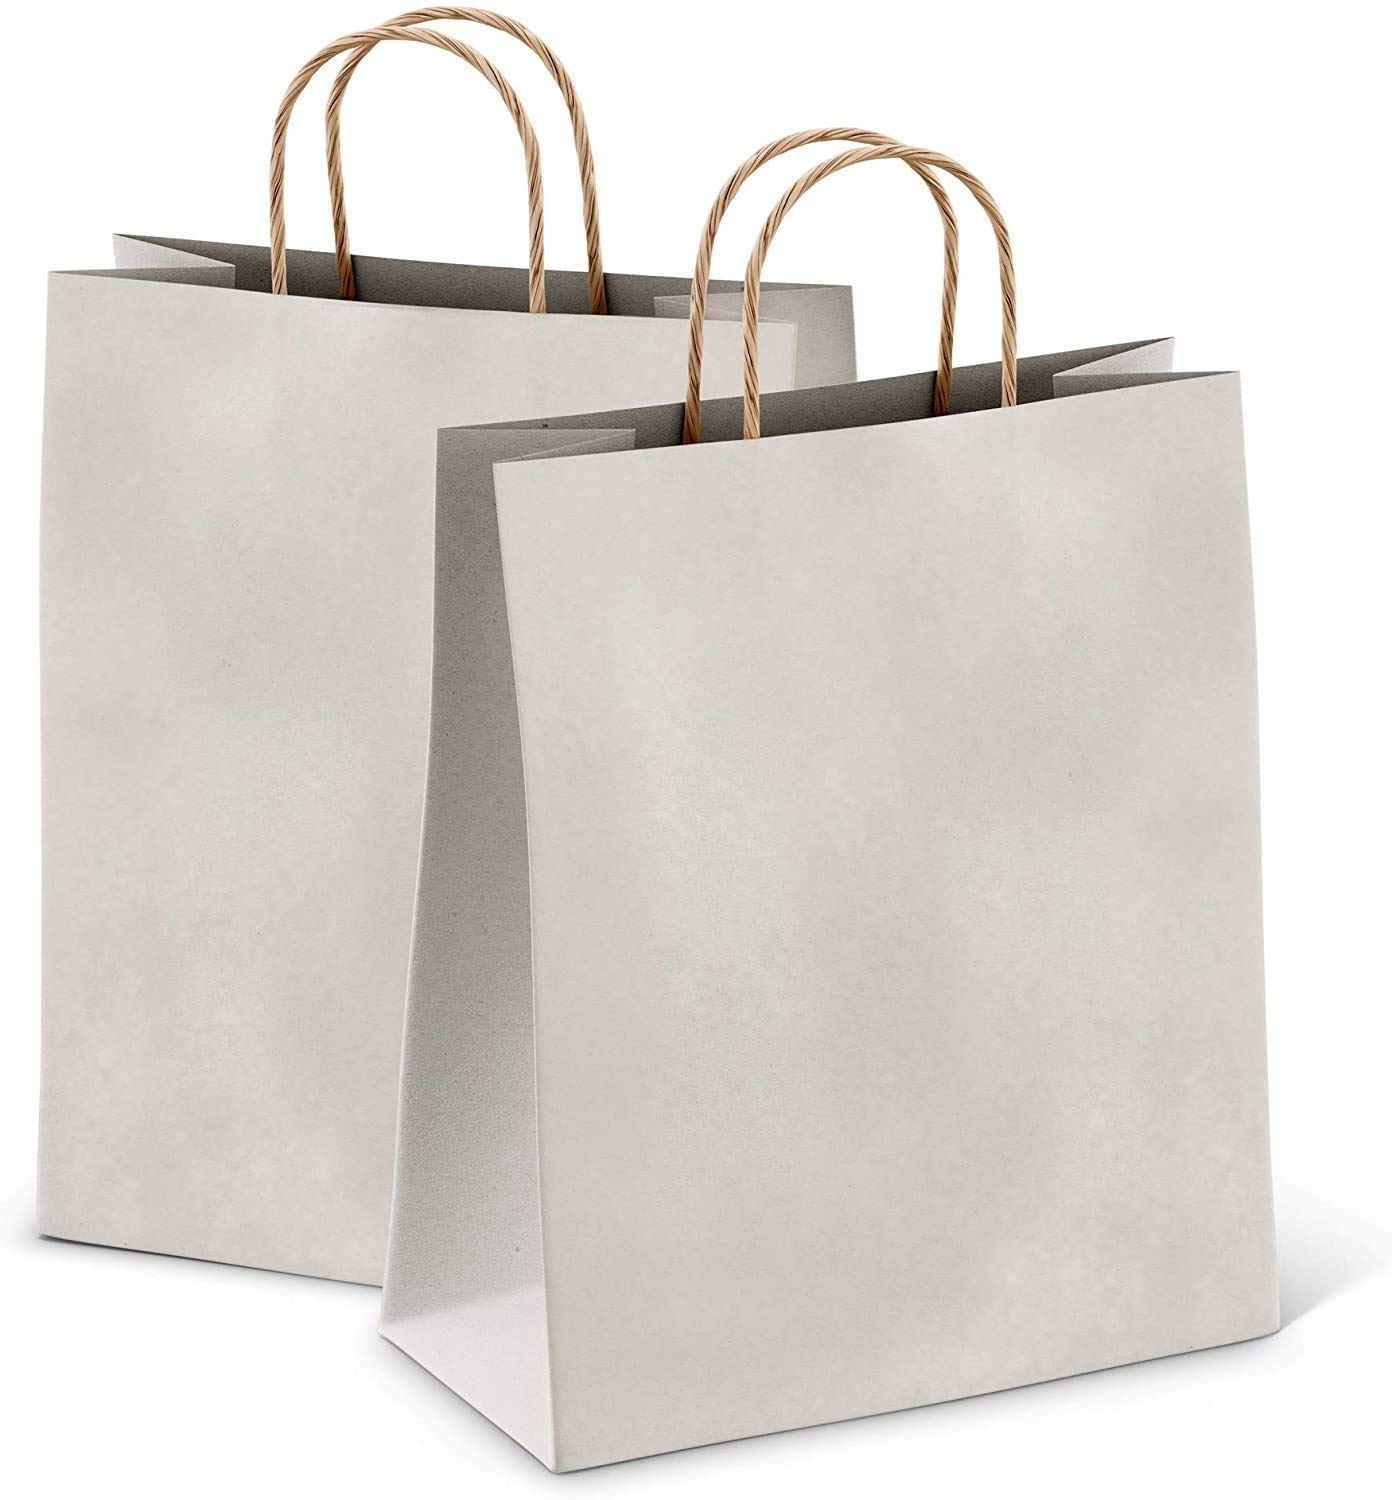 Paper Shopping Bags 10x5x13 Kraft Paper Bags 10 x 5 x 13 by Amiff. Pack of 25 Silver Retail Bags. Kraft Carrier Bags with Handles for Shopping, Merchandise and Grocery. Reusable. Silver 254x330x127